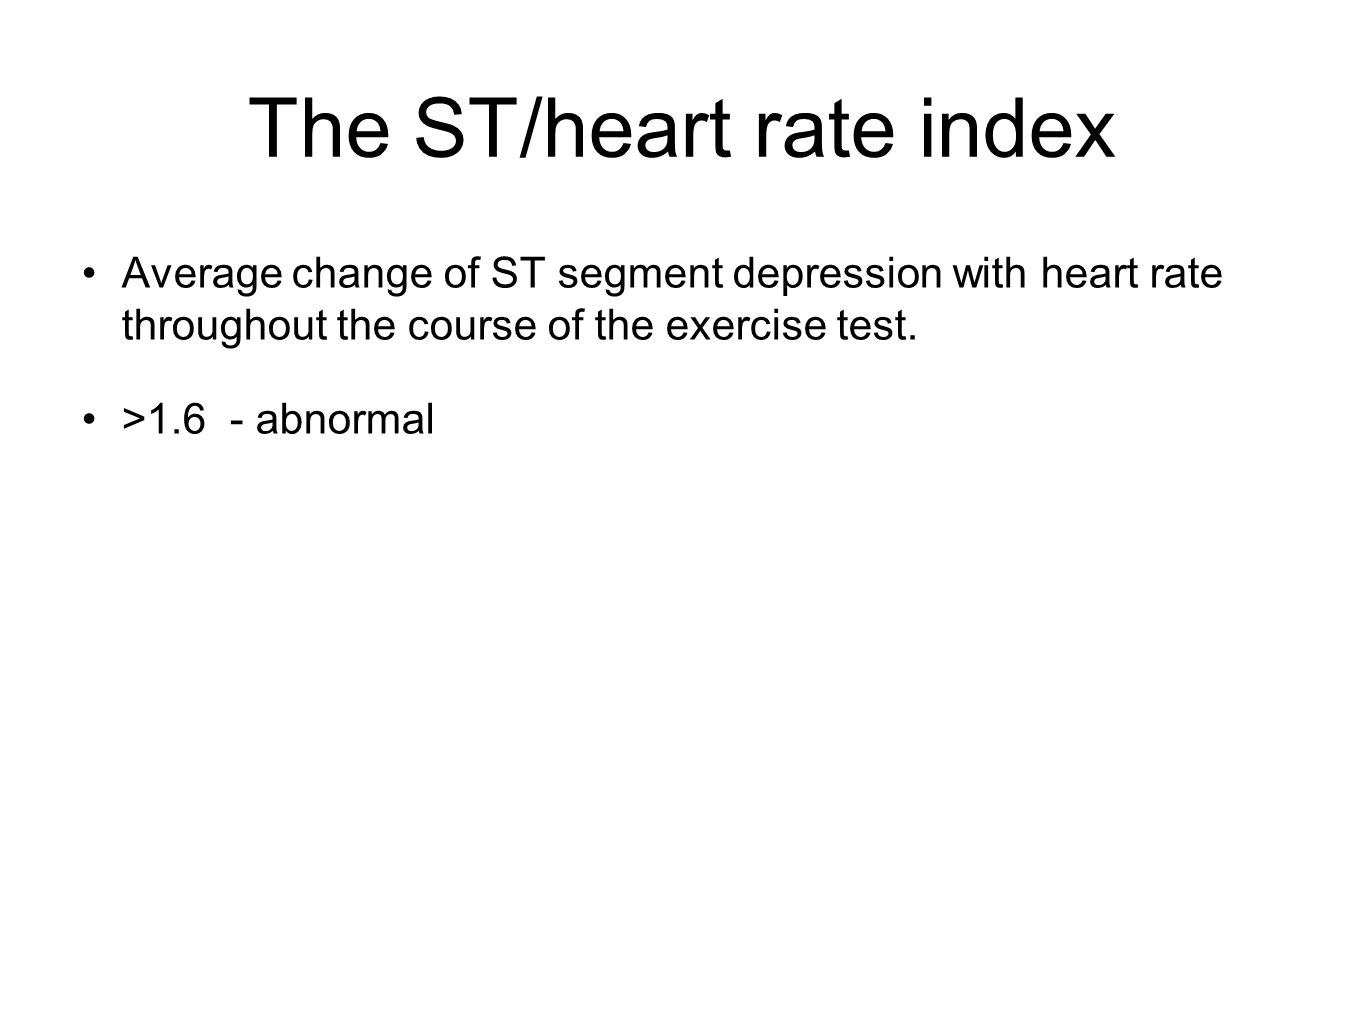 The ST/heart rate index